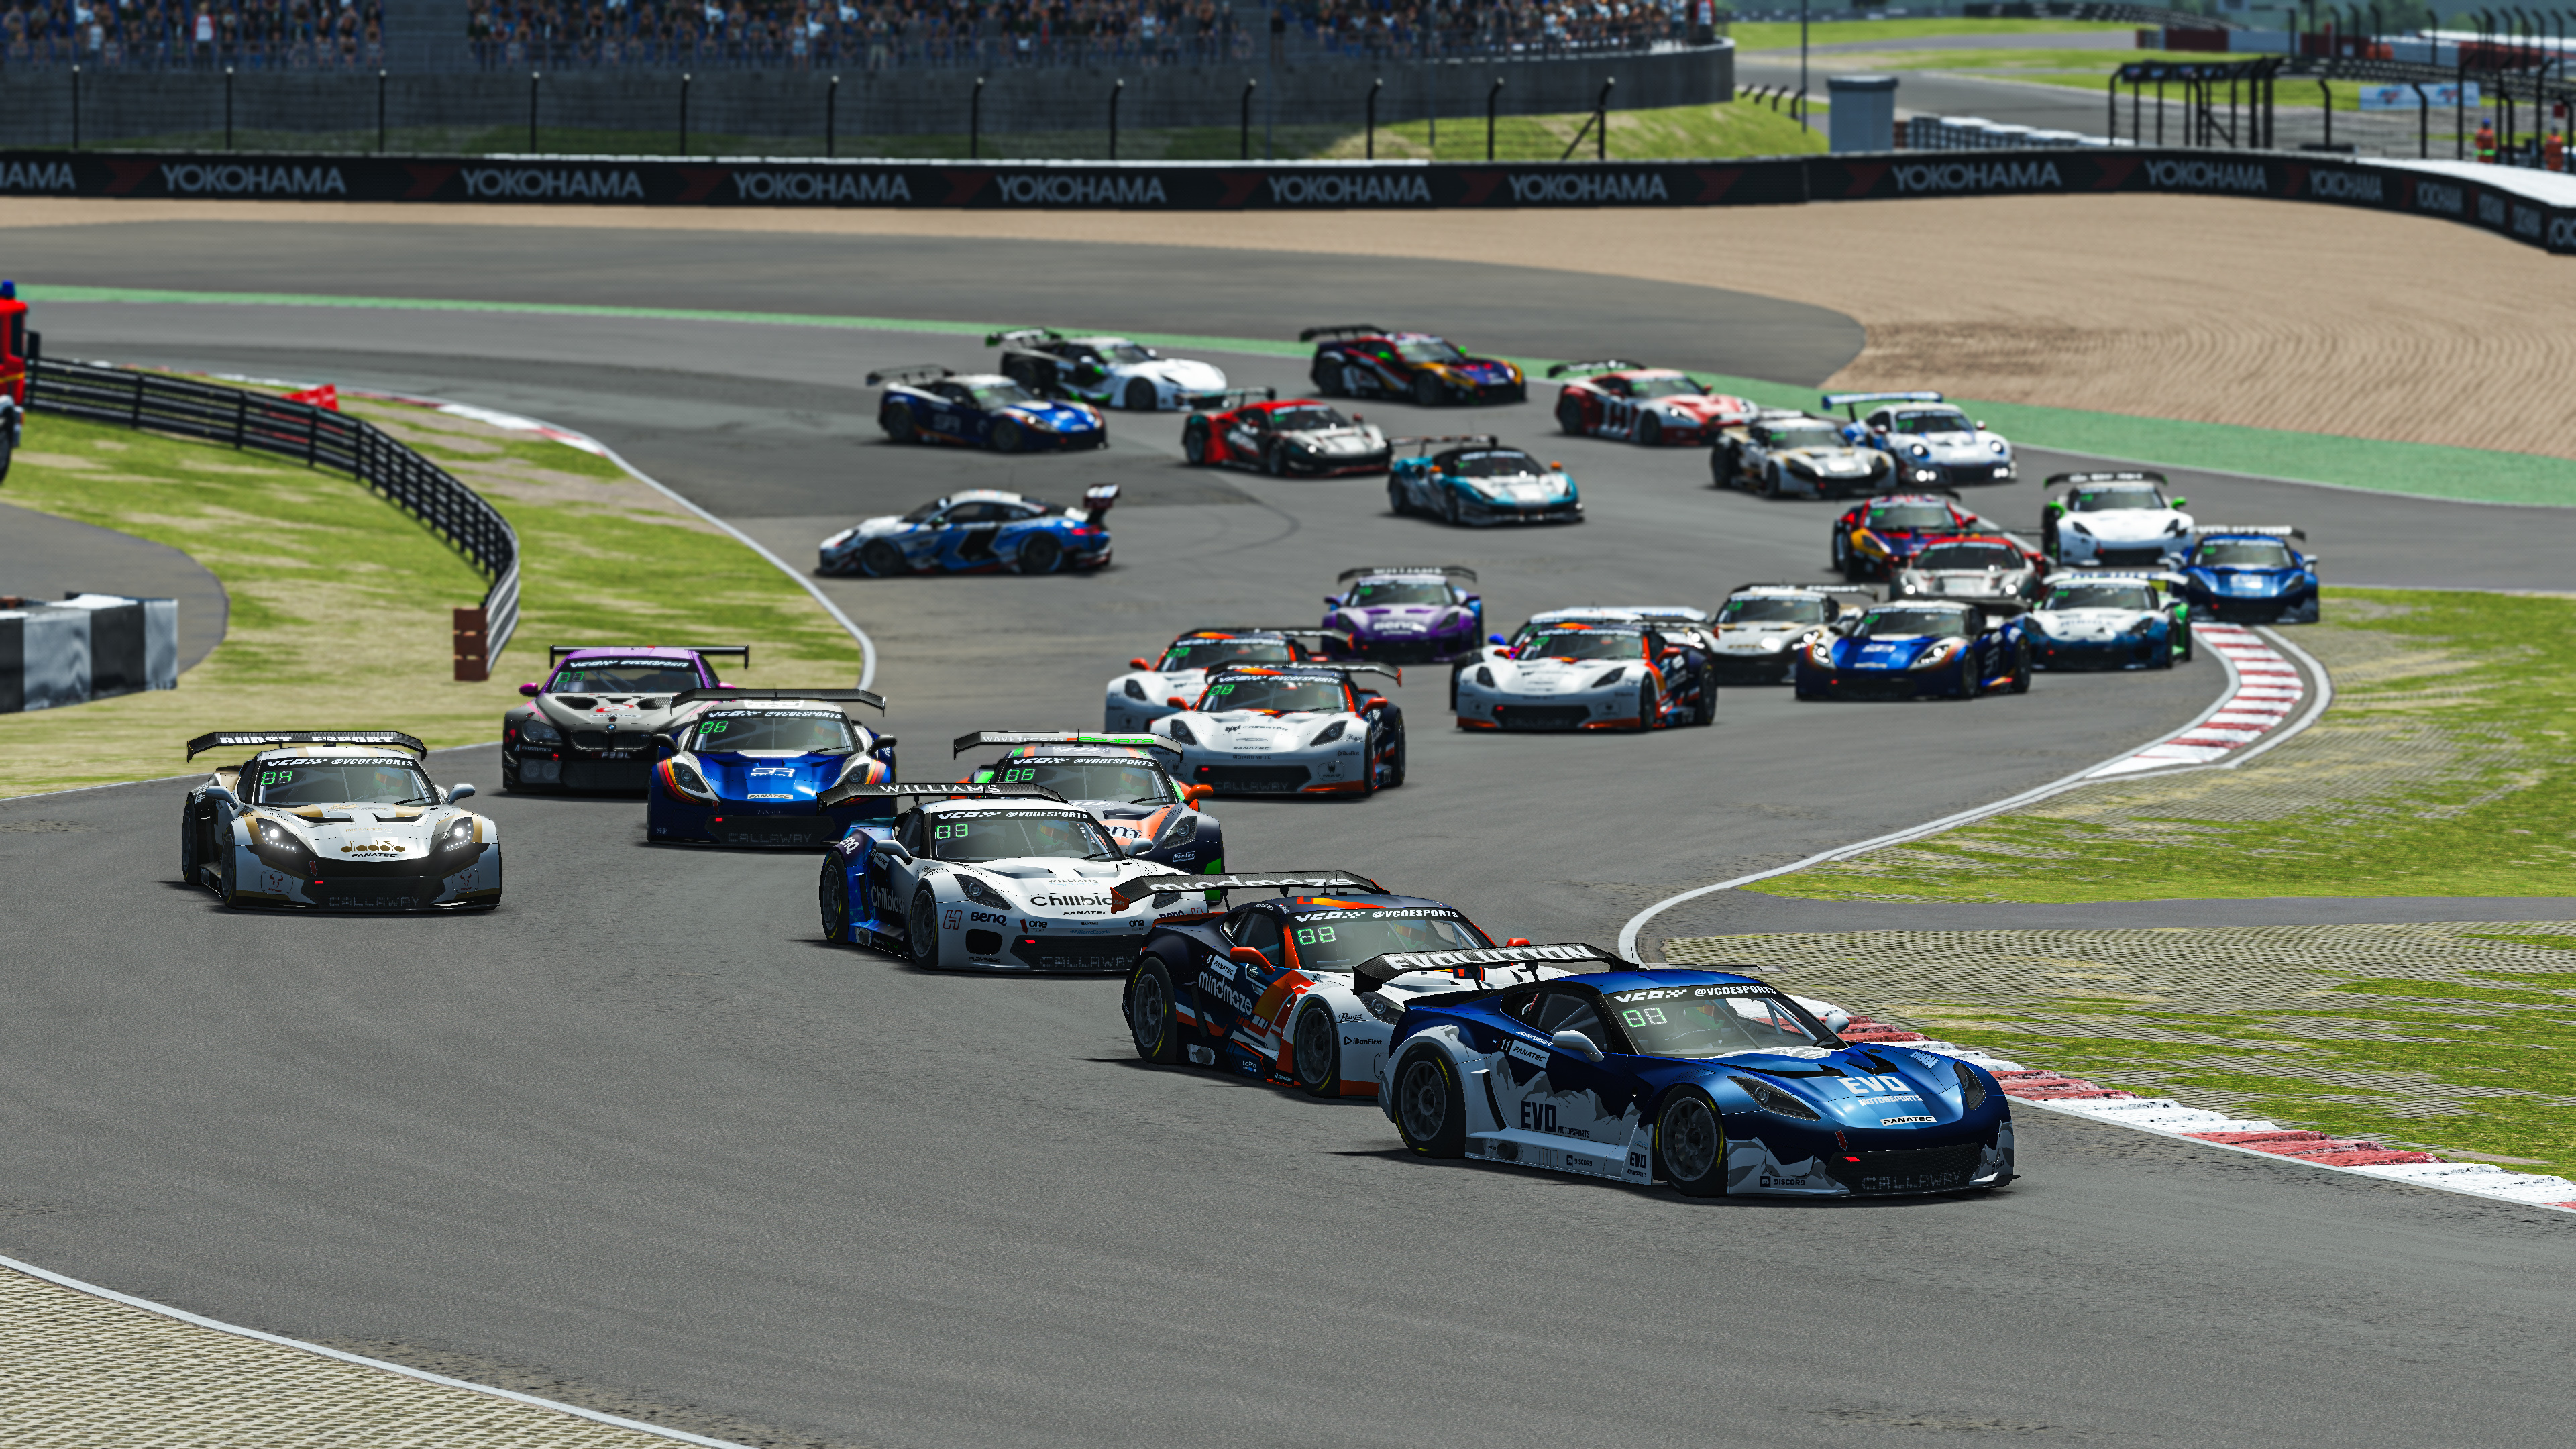 Gt Pro S2 R4 Feature Race Start Pic